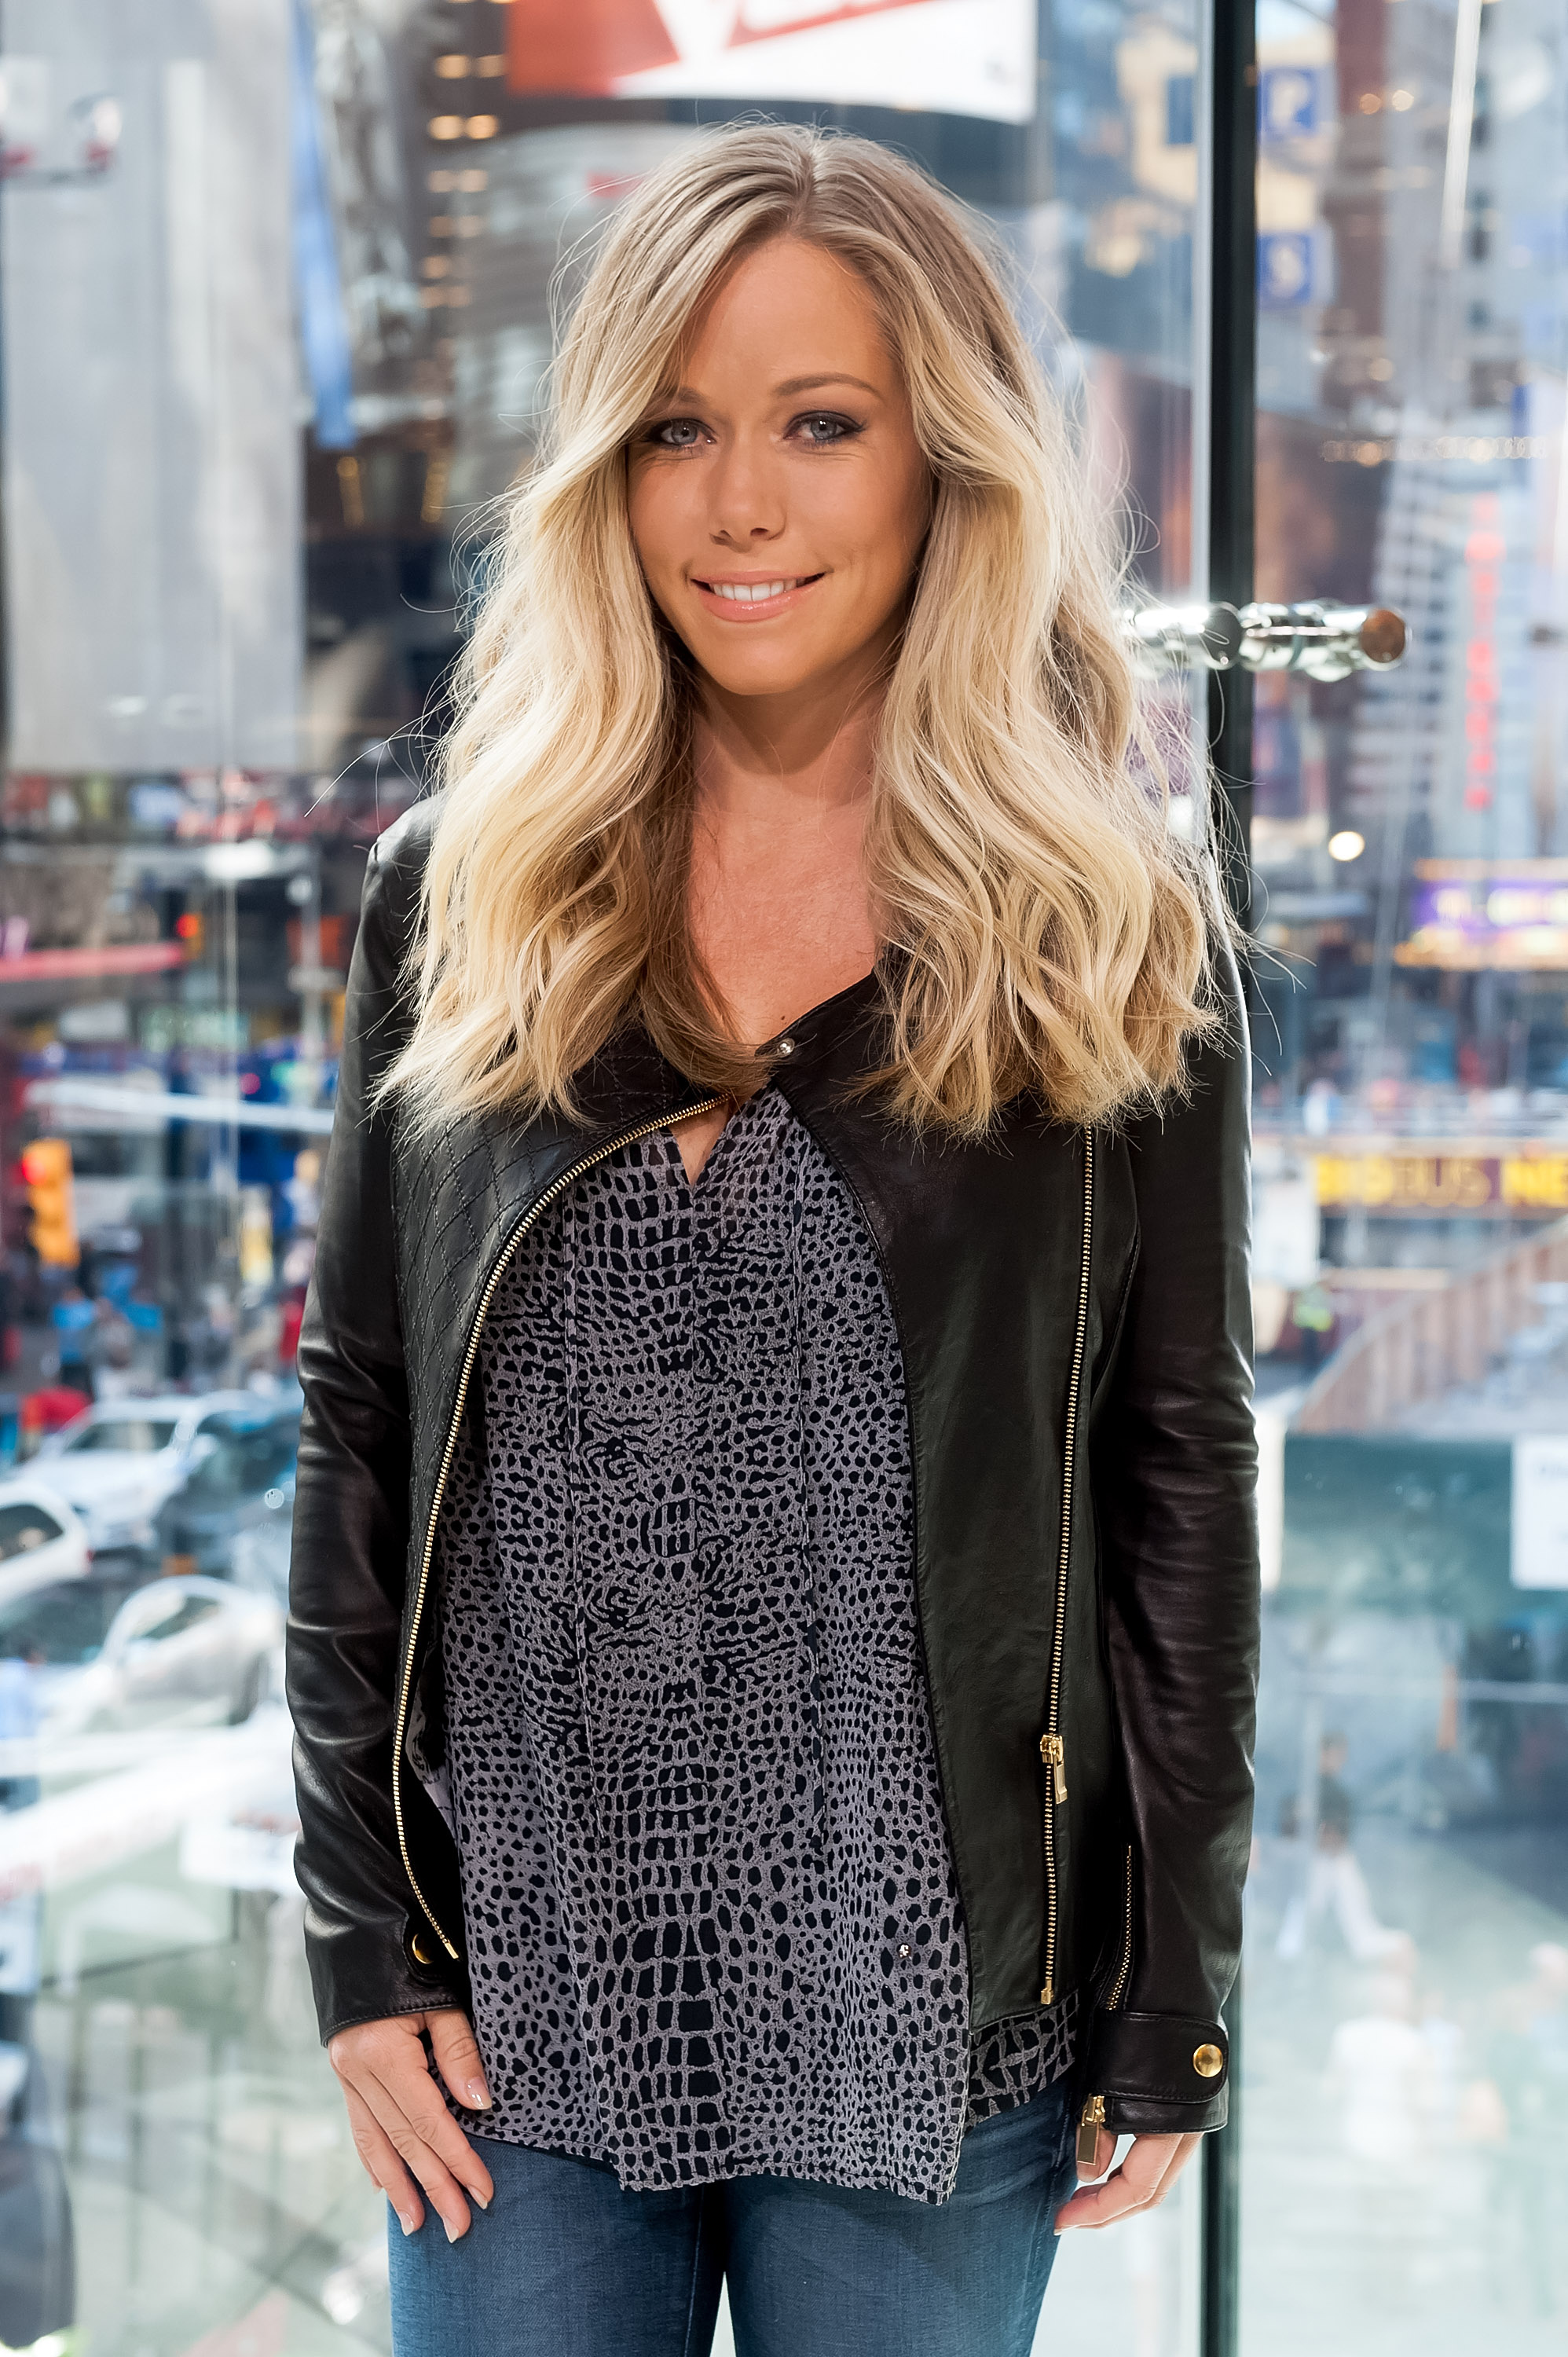 Kendra Wilkinson waxes nostalgic over her stripper income